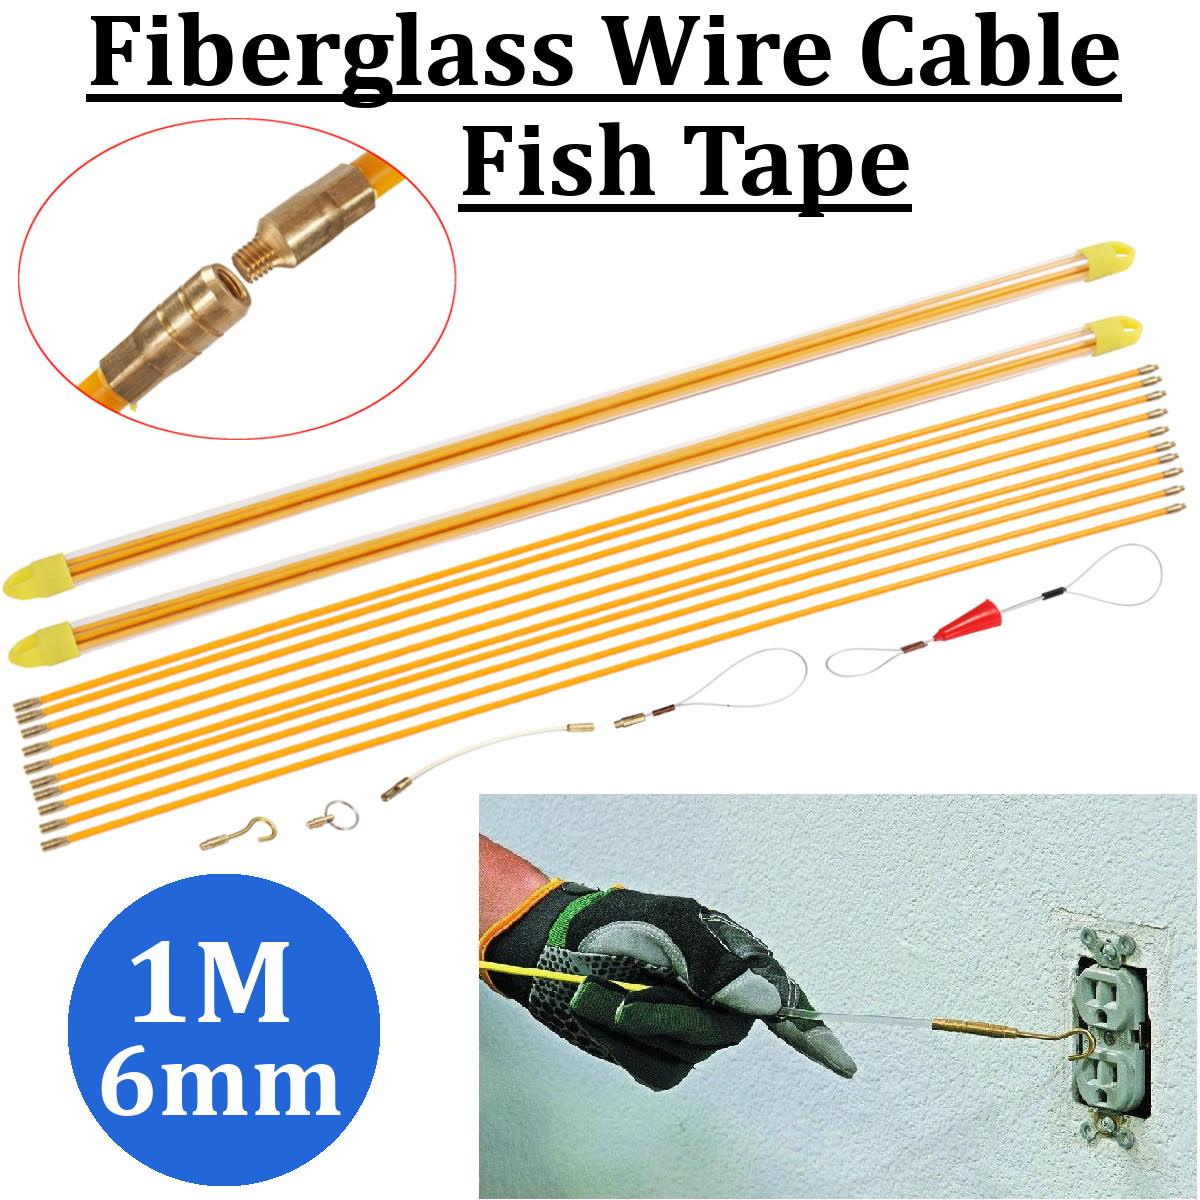 10x1M 6mm Fiberglass Wire Cable Rod Puller Electrical Fish Tape Pull Push Kit Fiberglass Wire Cable Rod Puller Tool Set Durable10x1M 6mm Fiberglass Wire Cable Rod Puller Electrical Fish Tape Pull Push Kit Fiberglass Wire Cable Rod Puller Tool Set Durable